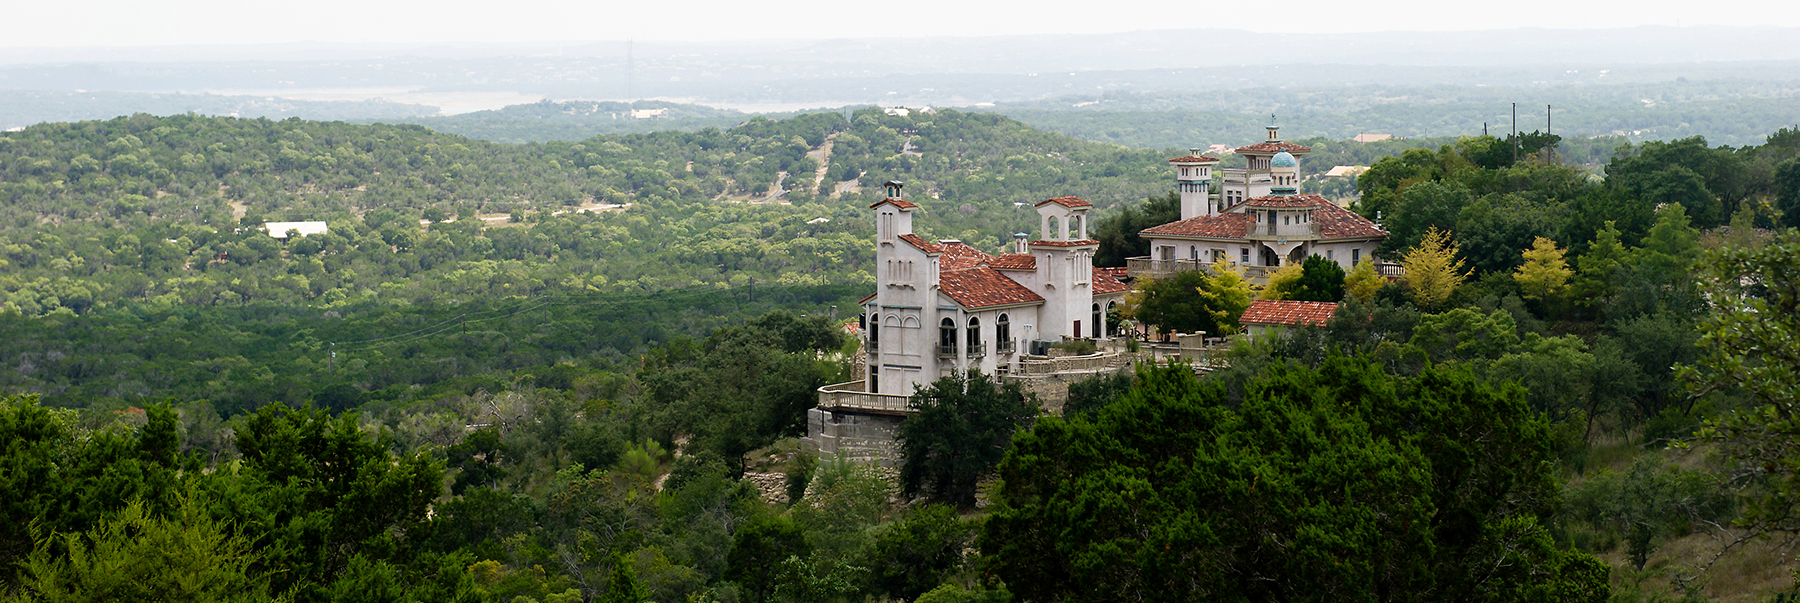 Villia Antonia is nestled high in the texas hill country overlooks Lake Travis.